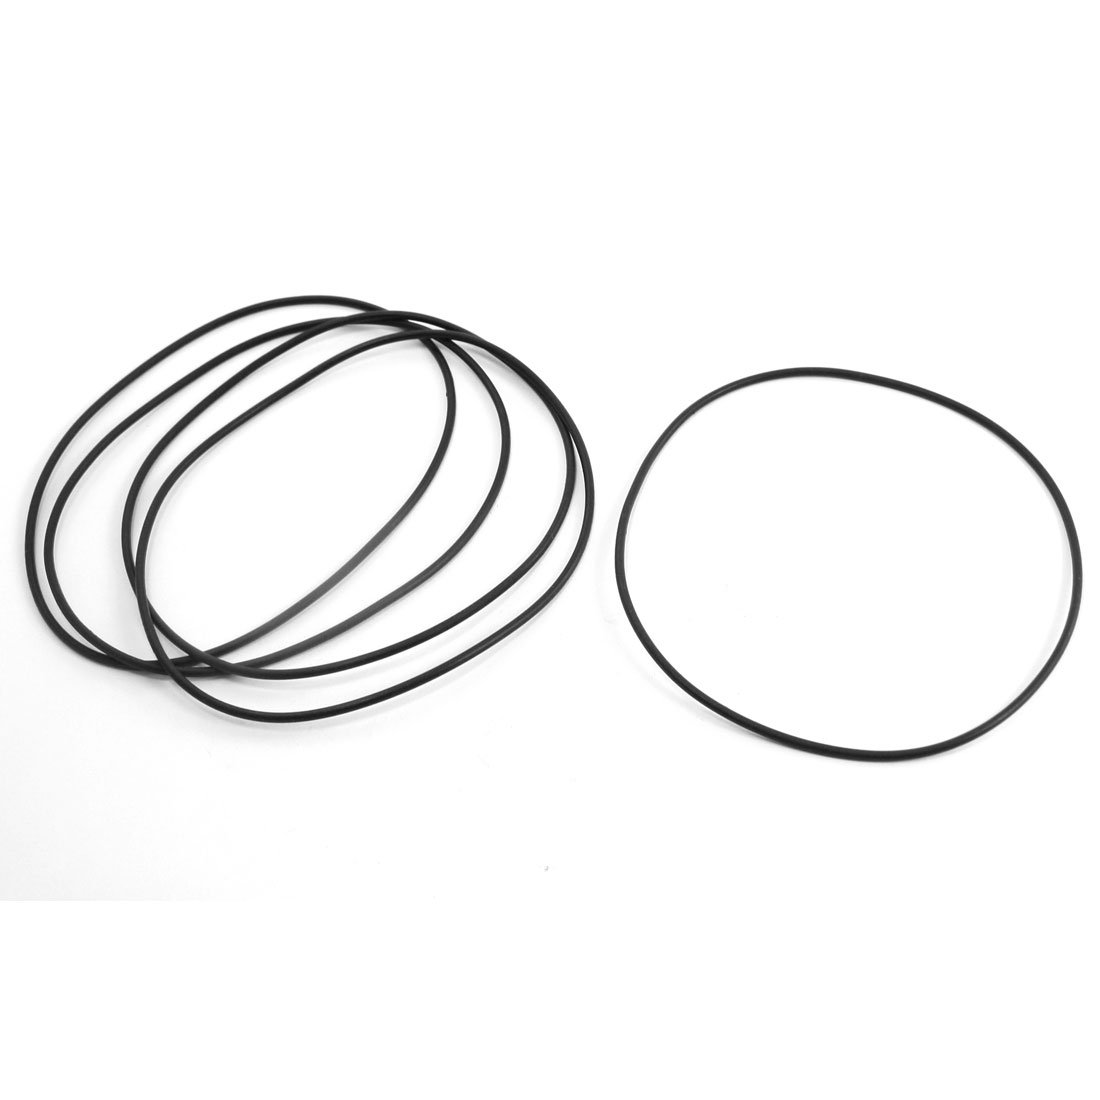 sourcingmap® 5 Pcs Replacement Flexible Rubber Oil Seal O Rings Gaskets 100mm x 2mm